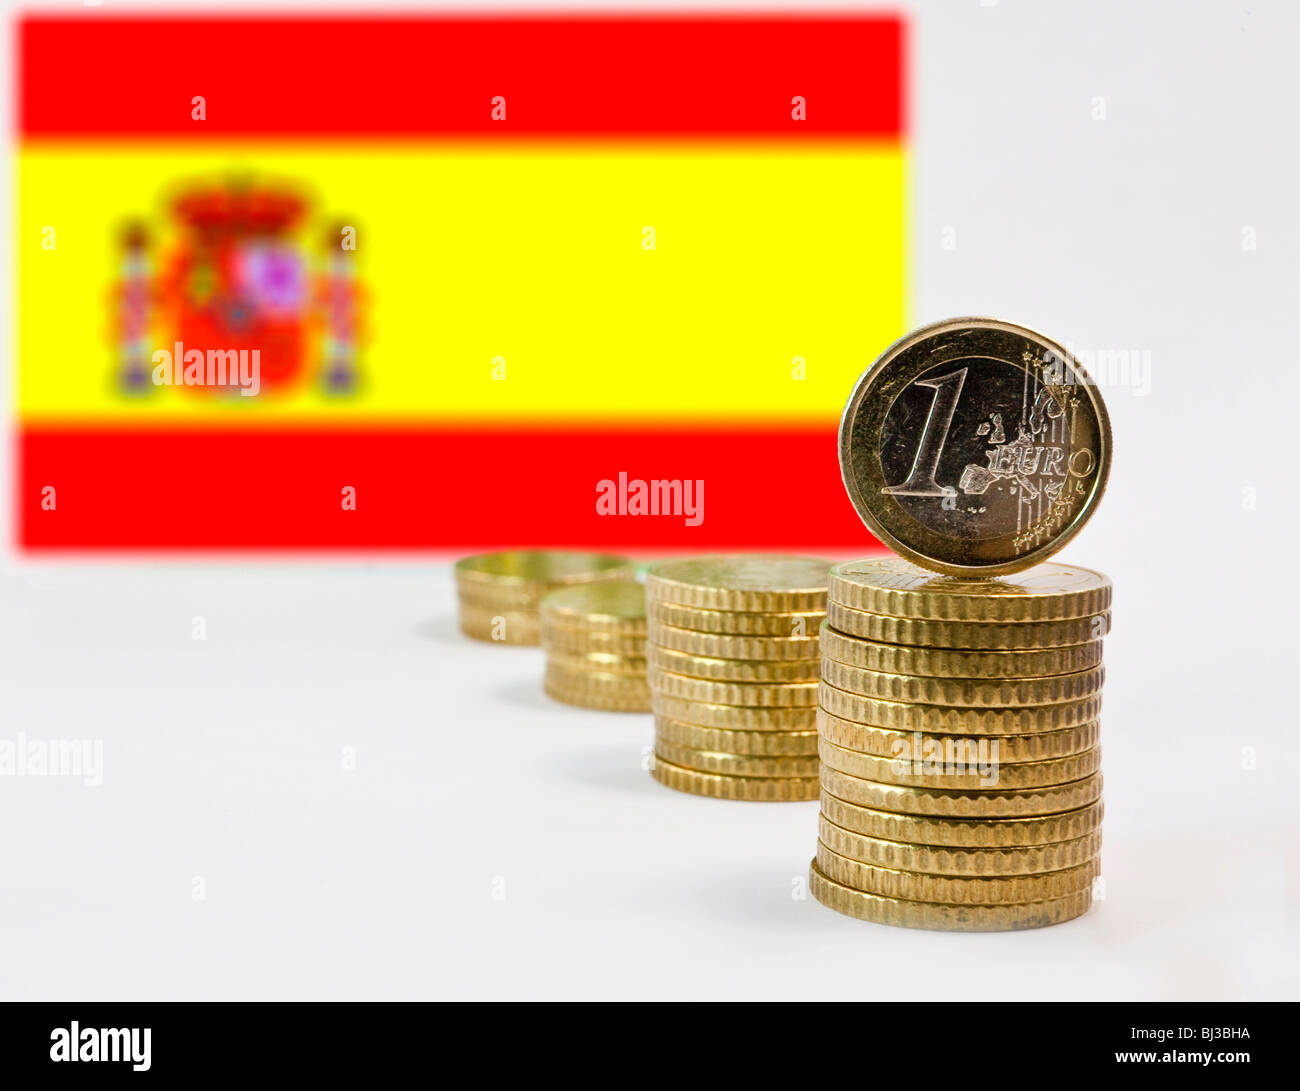 Spanish flag, Spain and the Euro - Stock Image